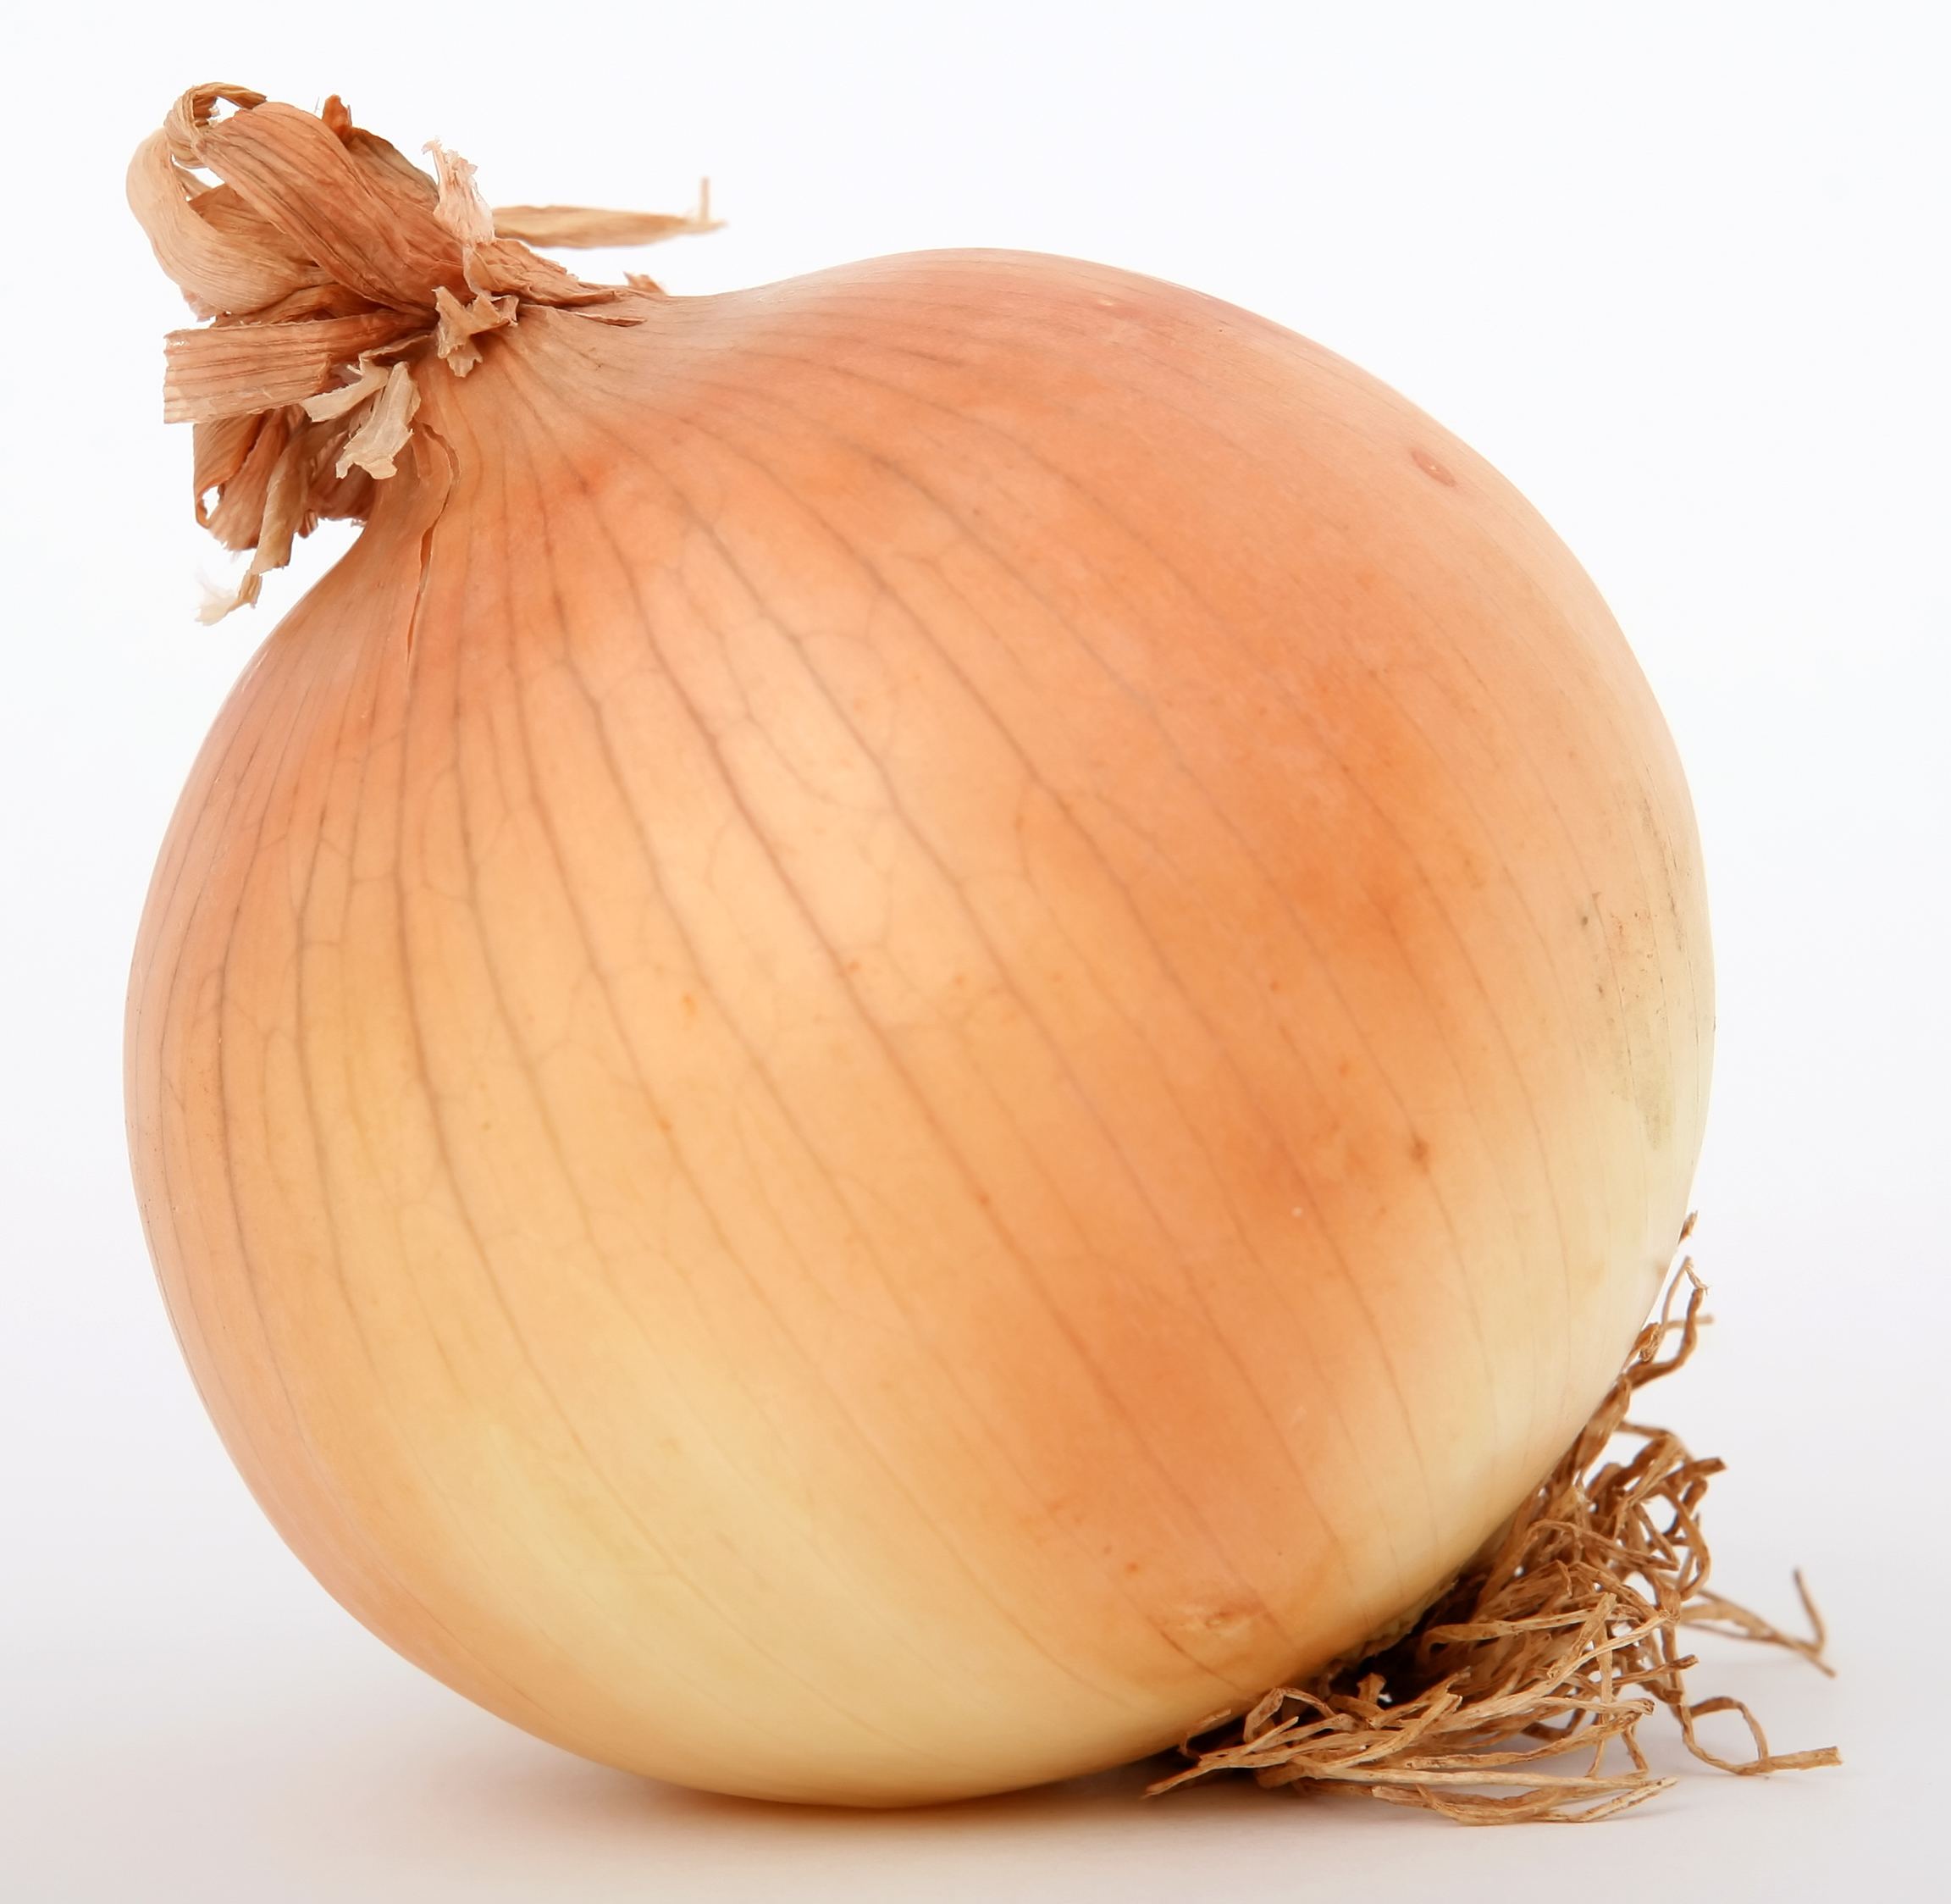 Images of Onion | 2304x2248